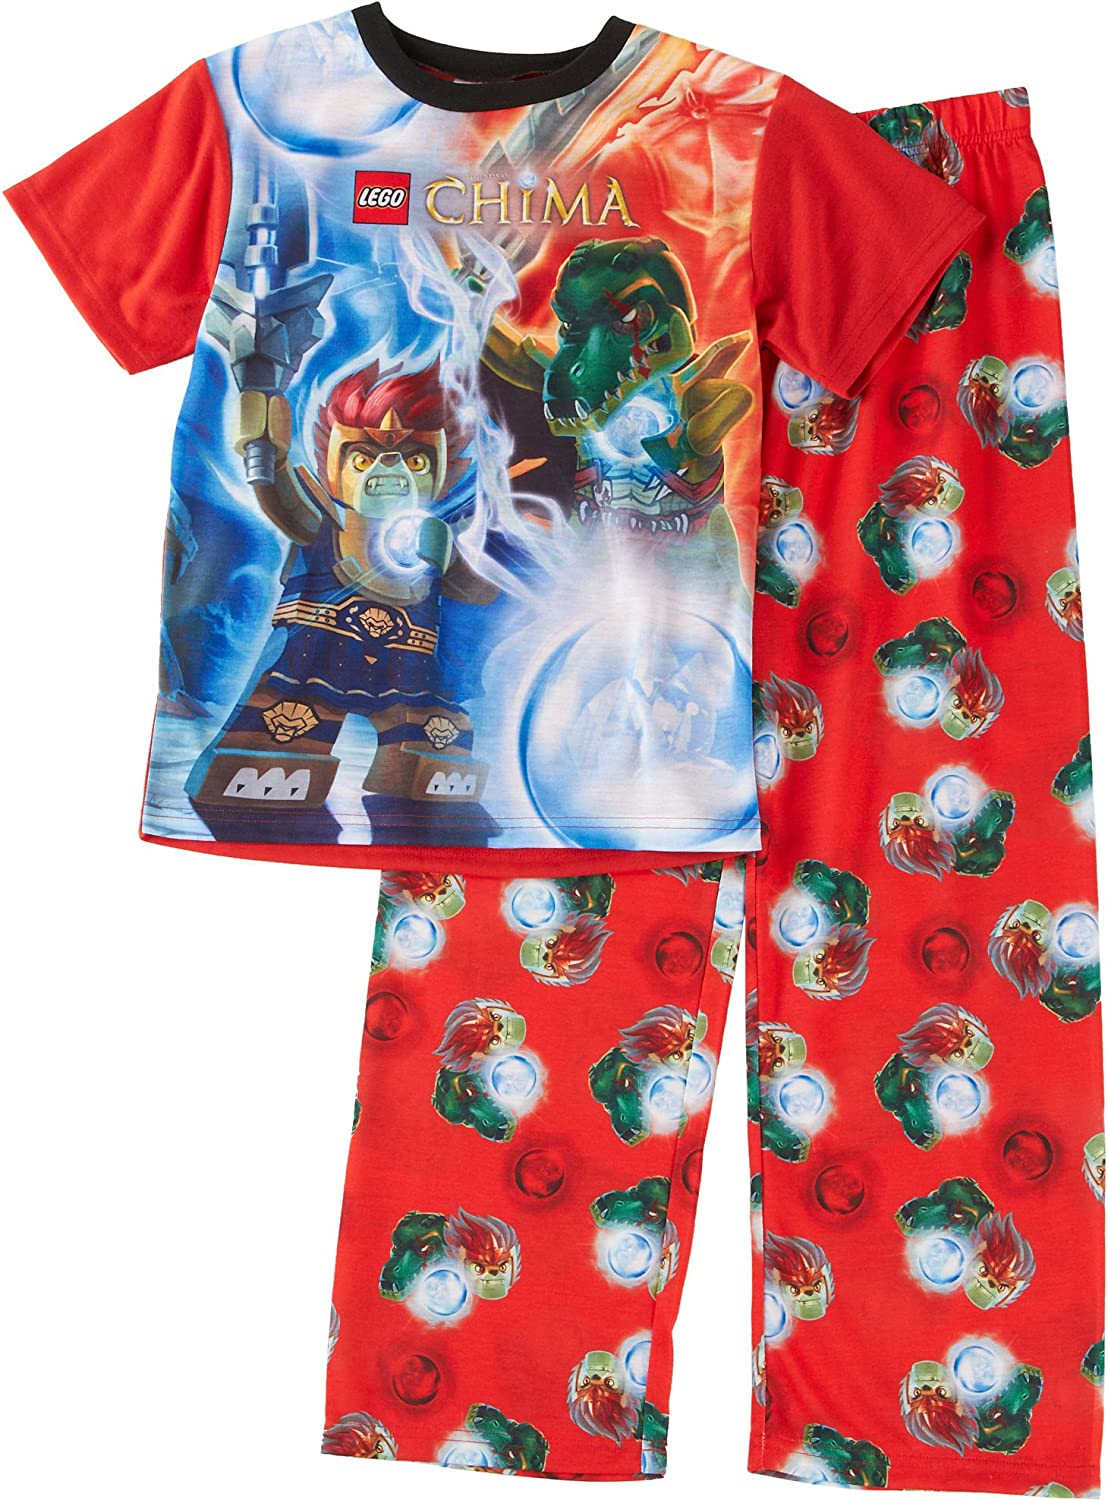 Lego Chima Laval Glow in the Dark Boys Cotton Pajamas Little Kid//Big Kid